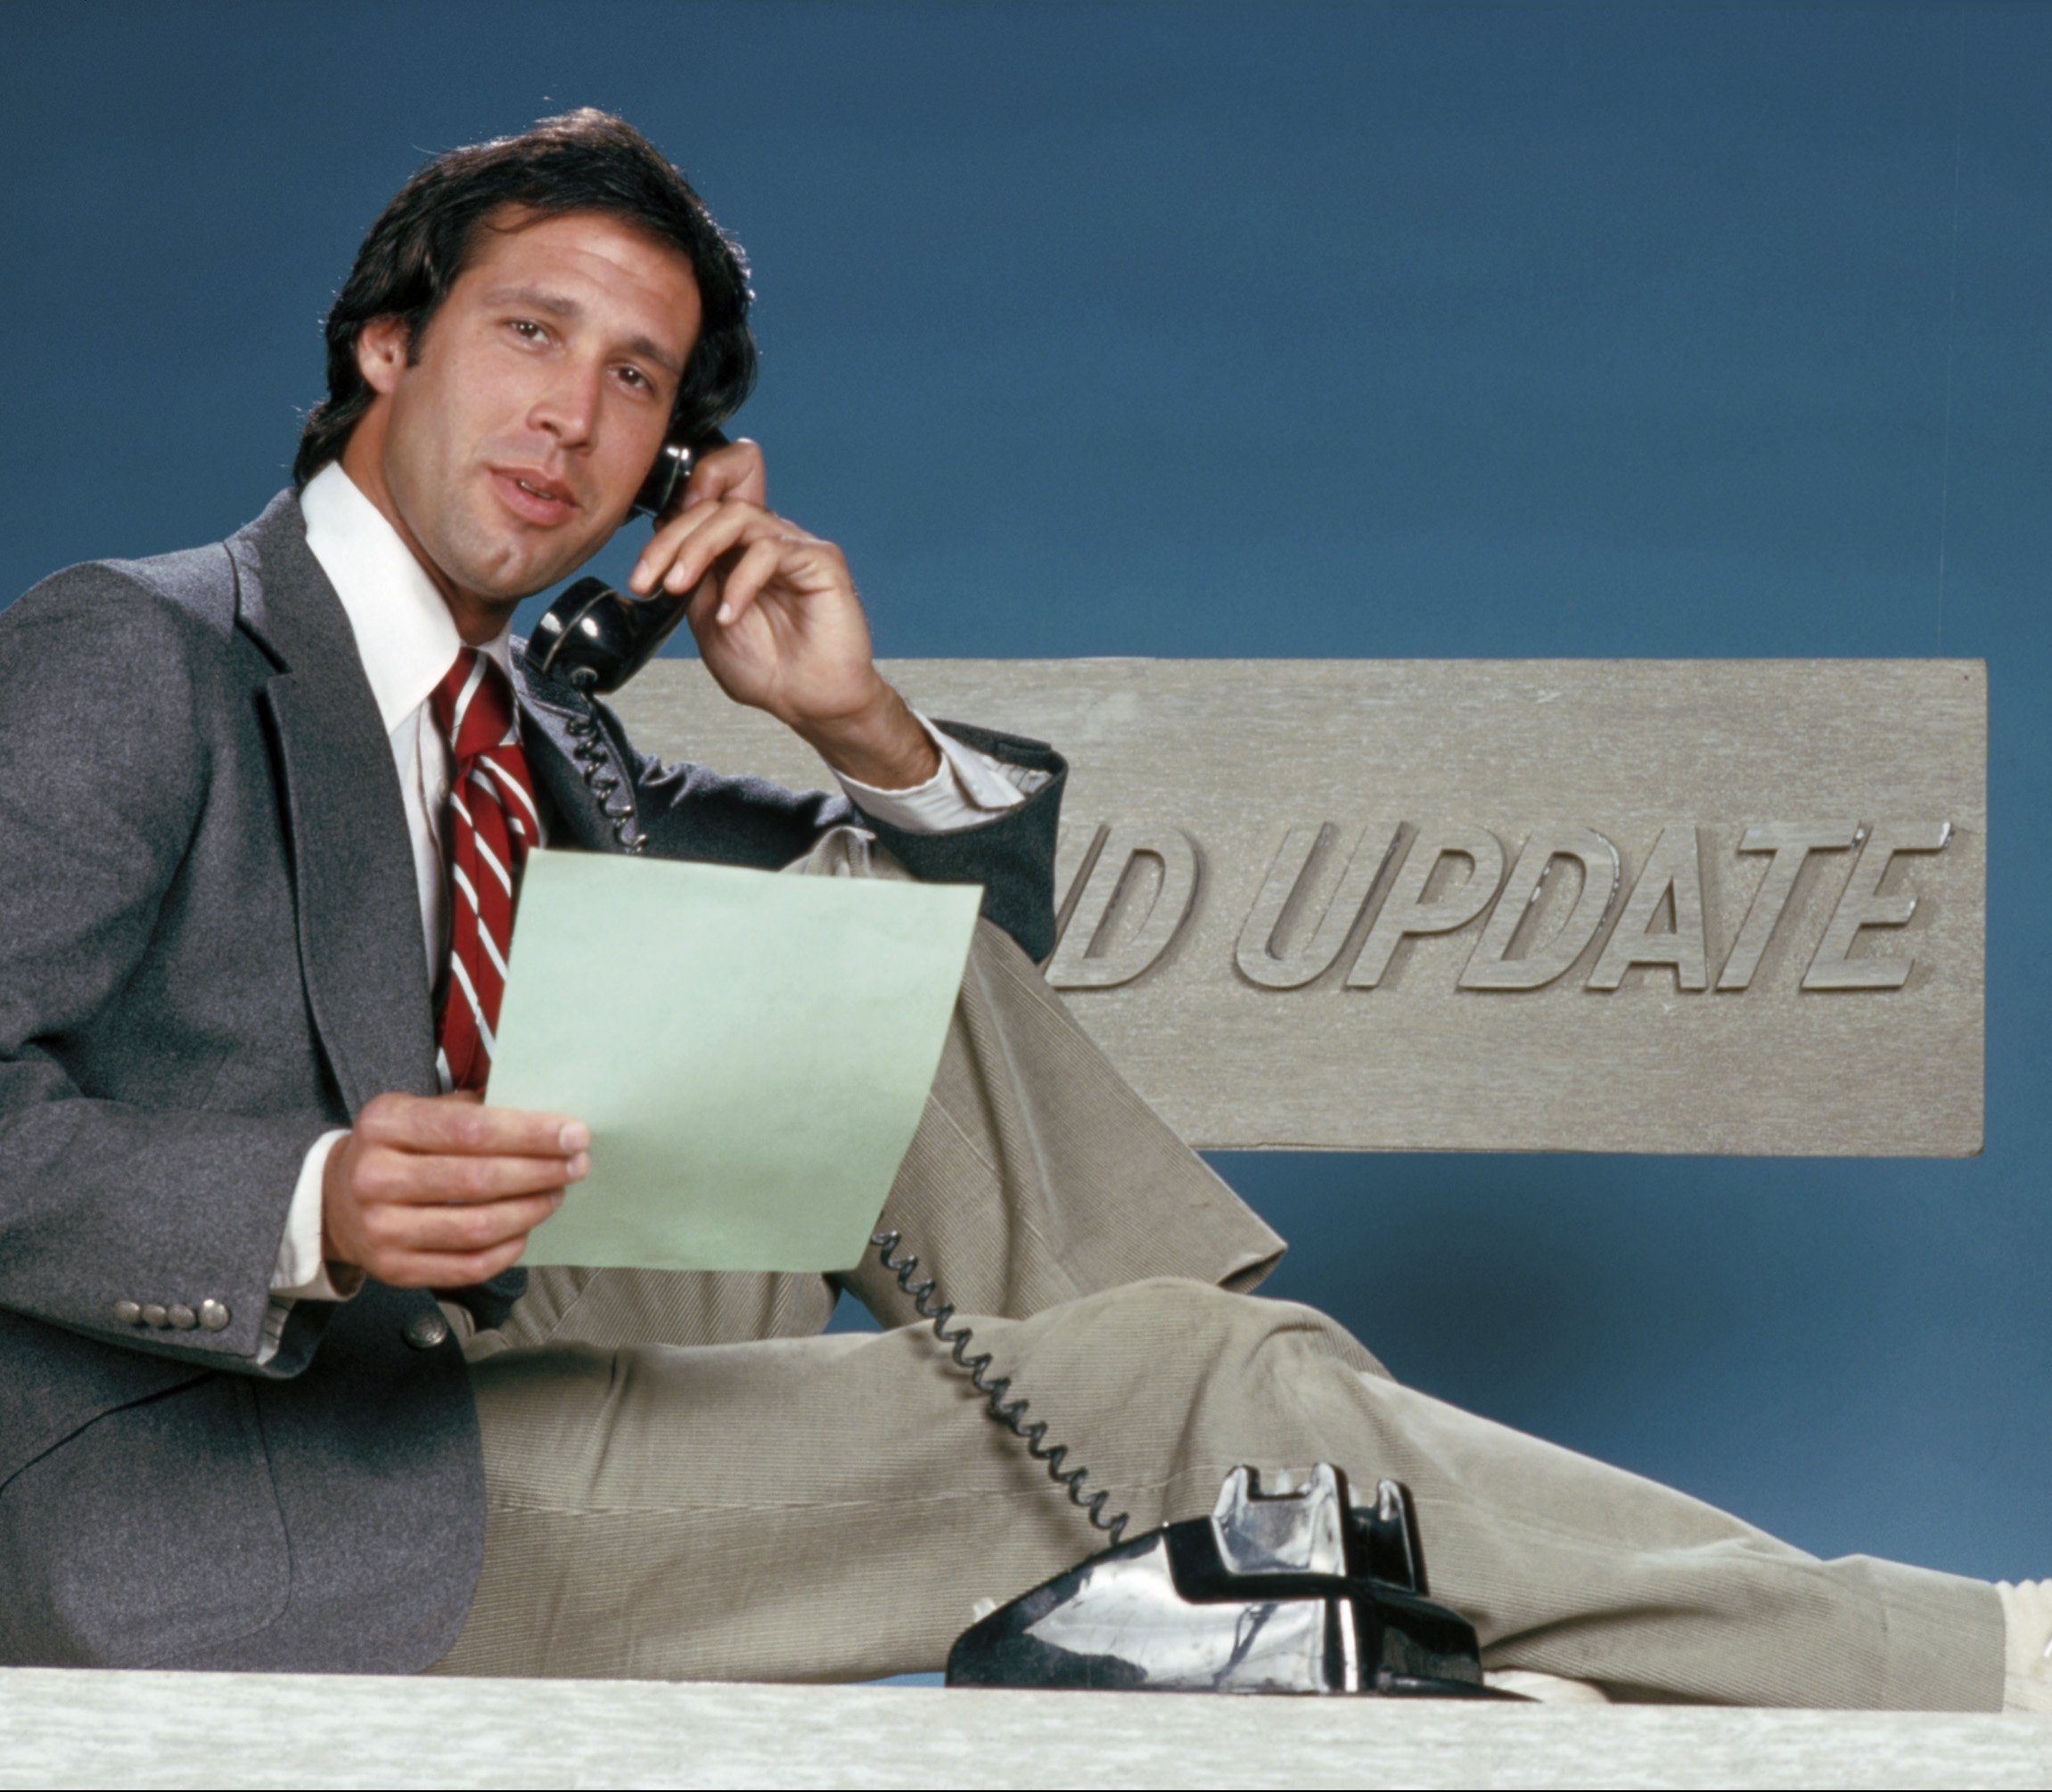 gen 5 scaled e1602752296265 20 Things You Never Knew About Chevy Chase